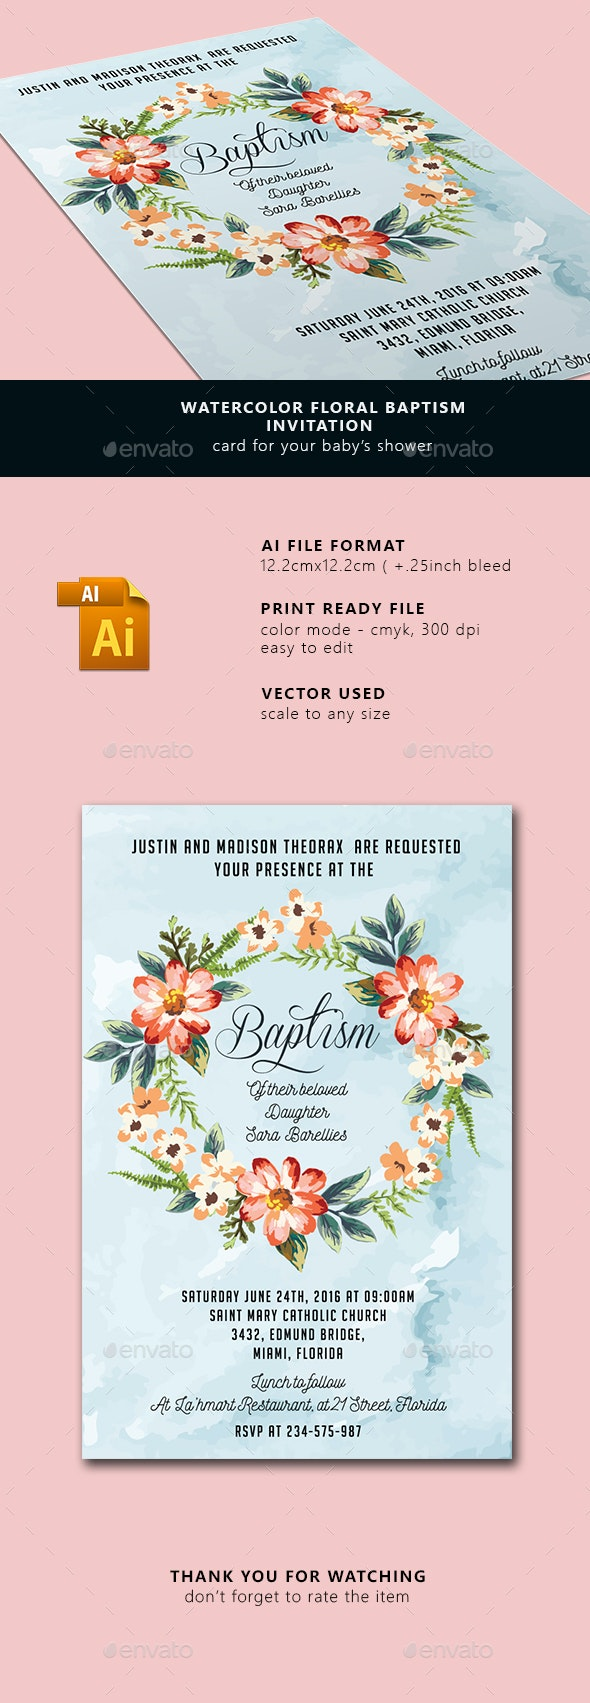 Watercolor Floral Baptism Invitation  - Cards & Invites Print Templates